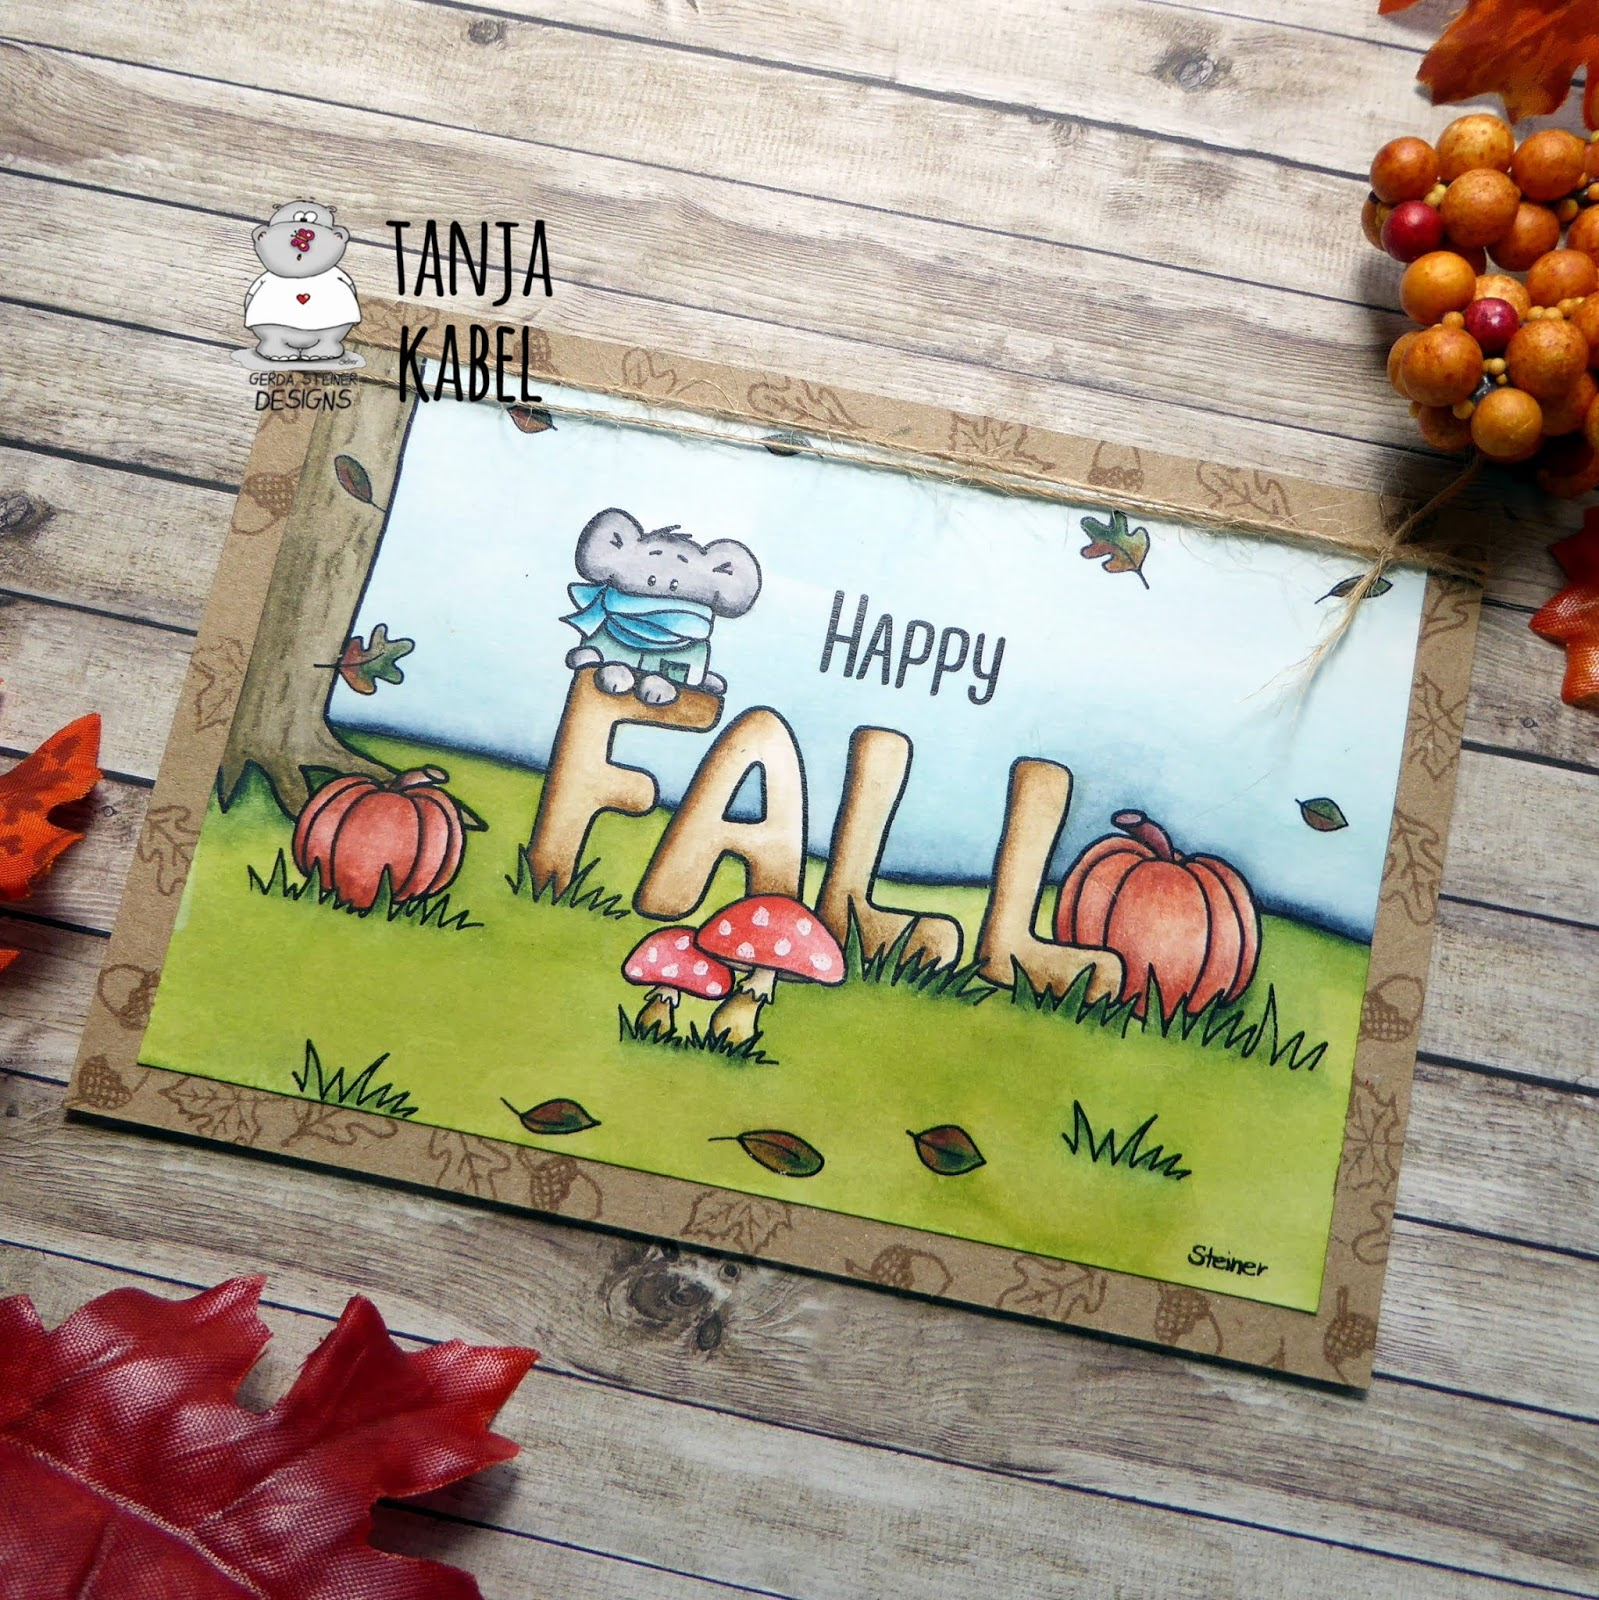 Color The Gerda Steiner Designs Happy Fall Printable With Derwent Inktense Pencils Watered Down Distress Ink Tumbled Glass Peeled Paint And A Damp